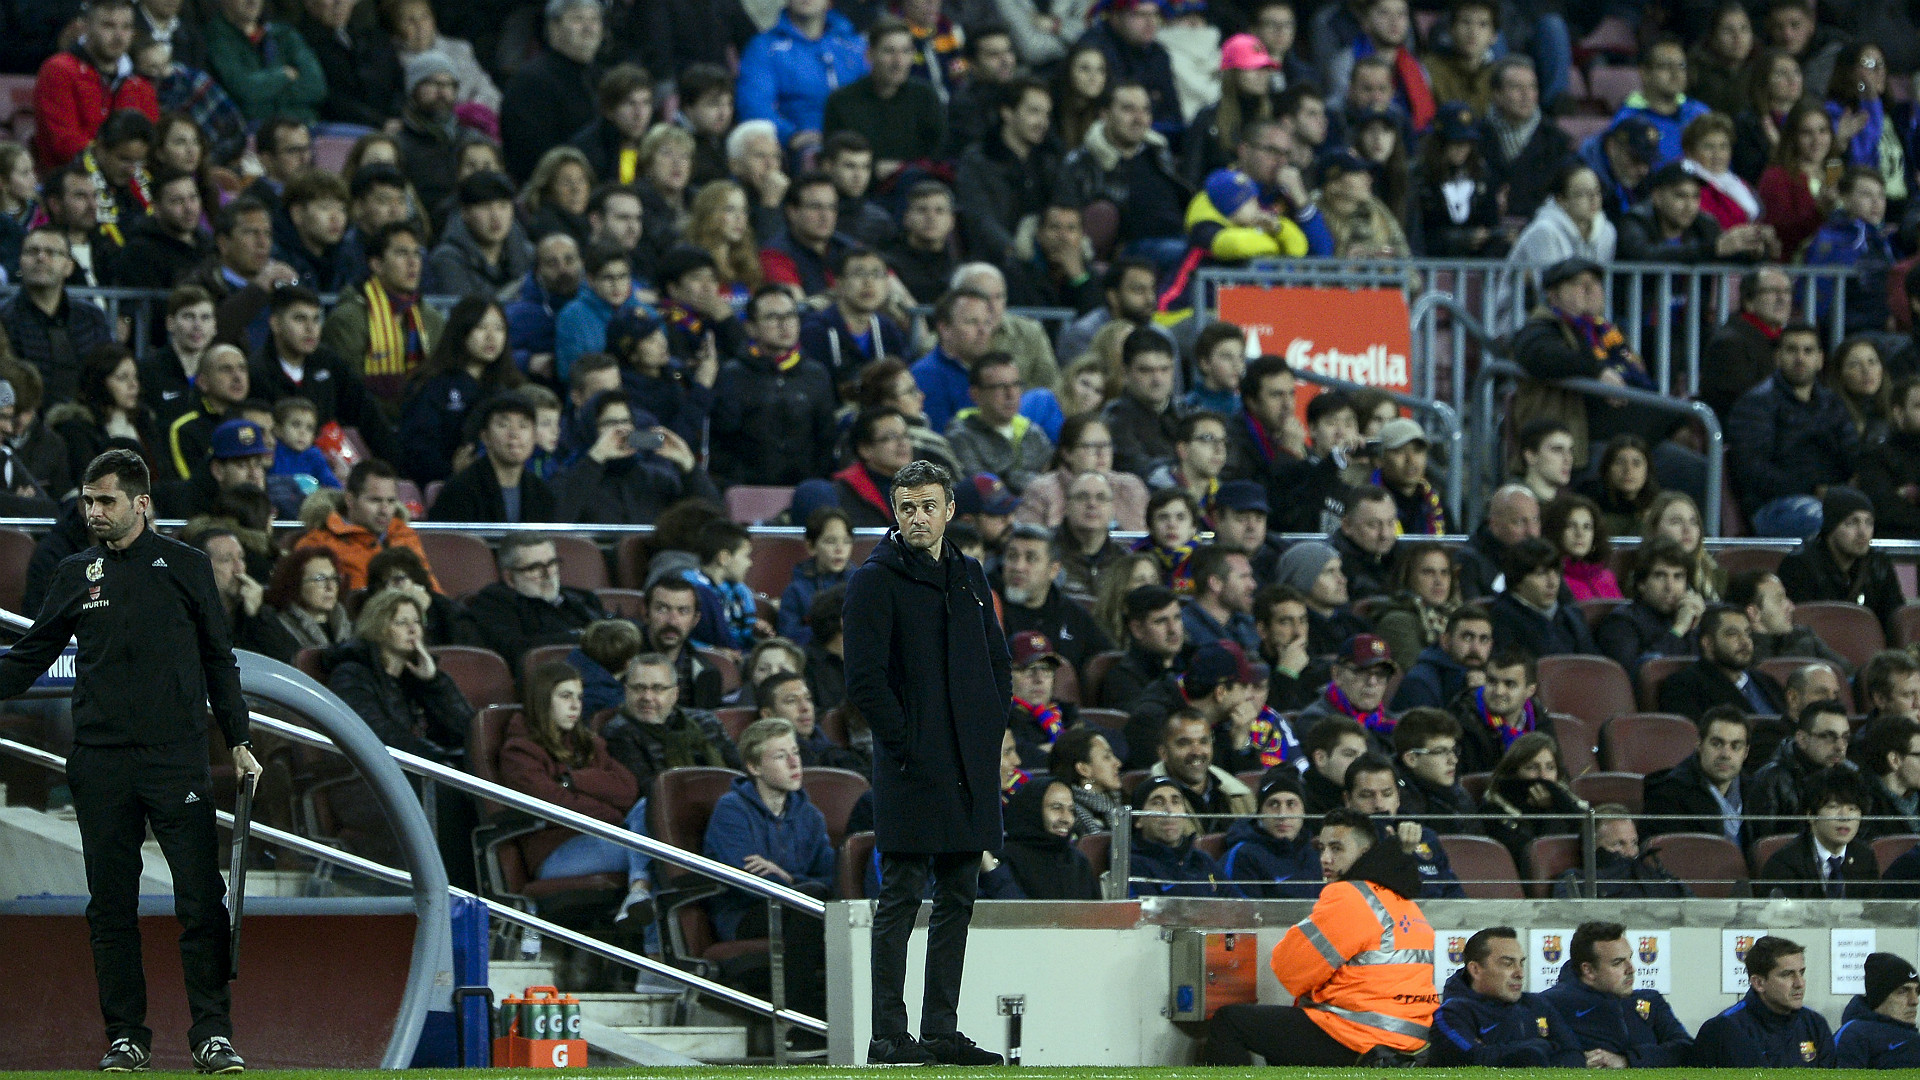 Pique: Barcelona were in deep s*** when Luis Enrique arrived